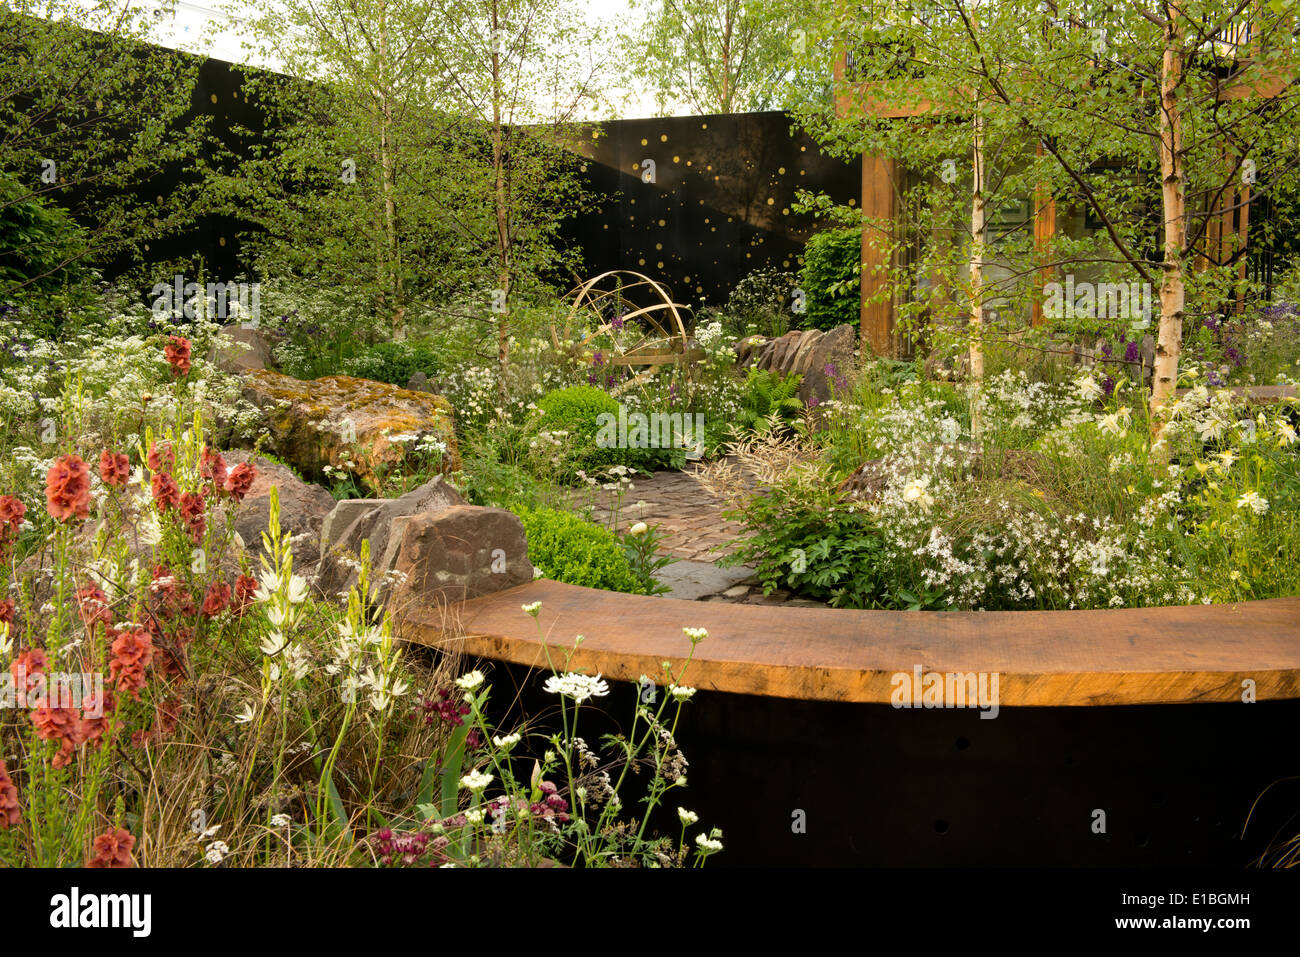 A section of the Vital Earth Night Sky Garden at The Chelsea Flower Show 2014 - Stock Image